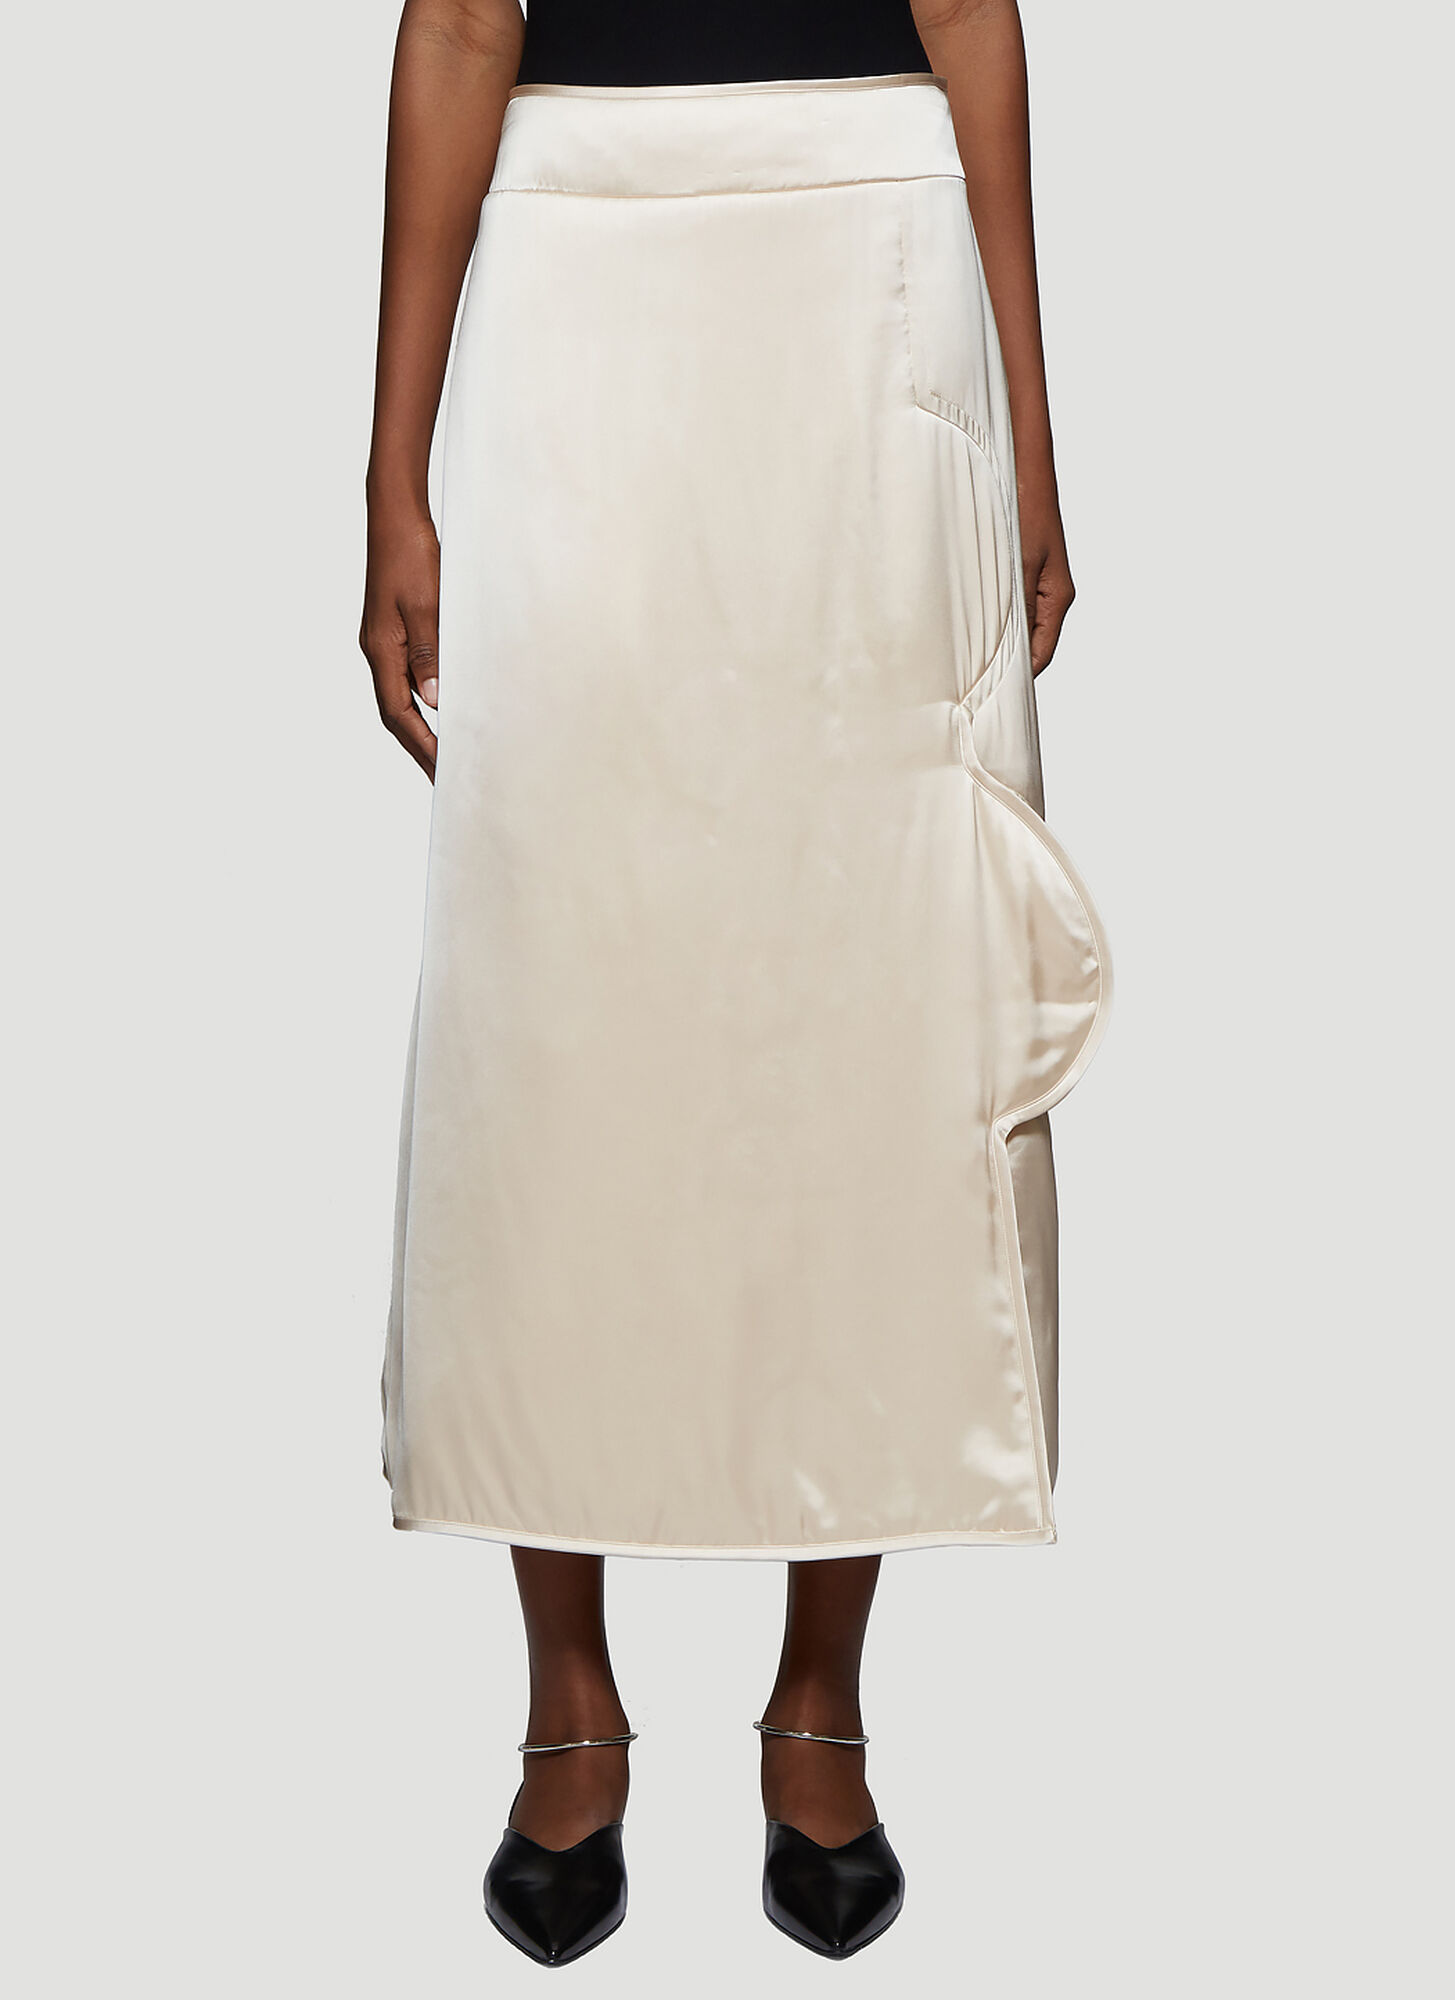 Jil Sander Quilted Satin Skirt in Ivory